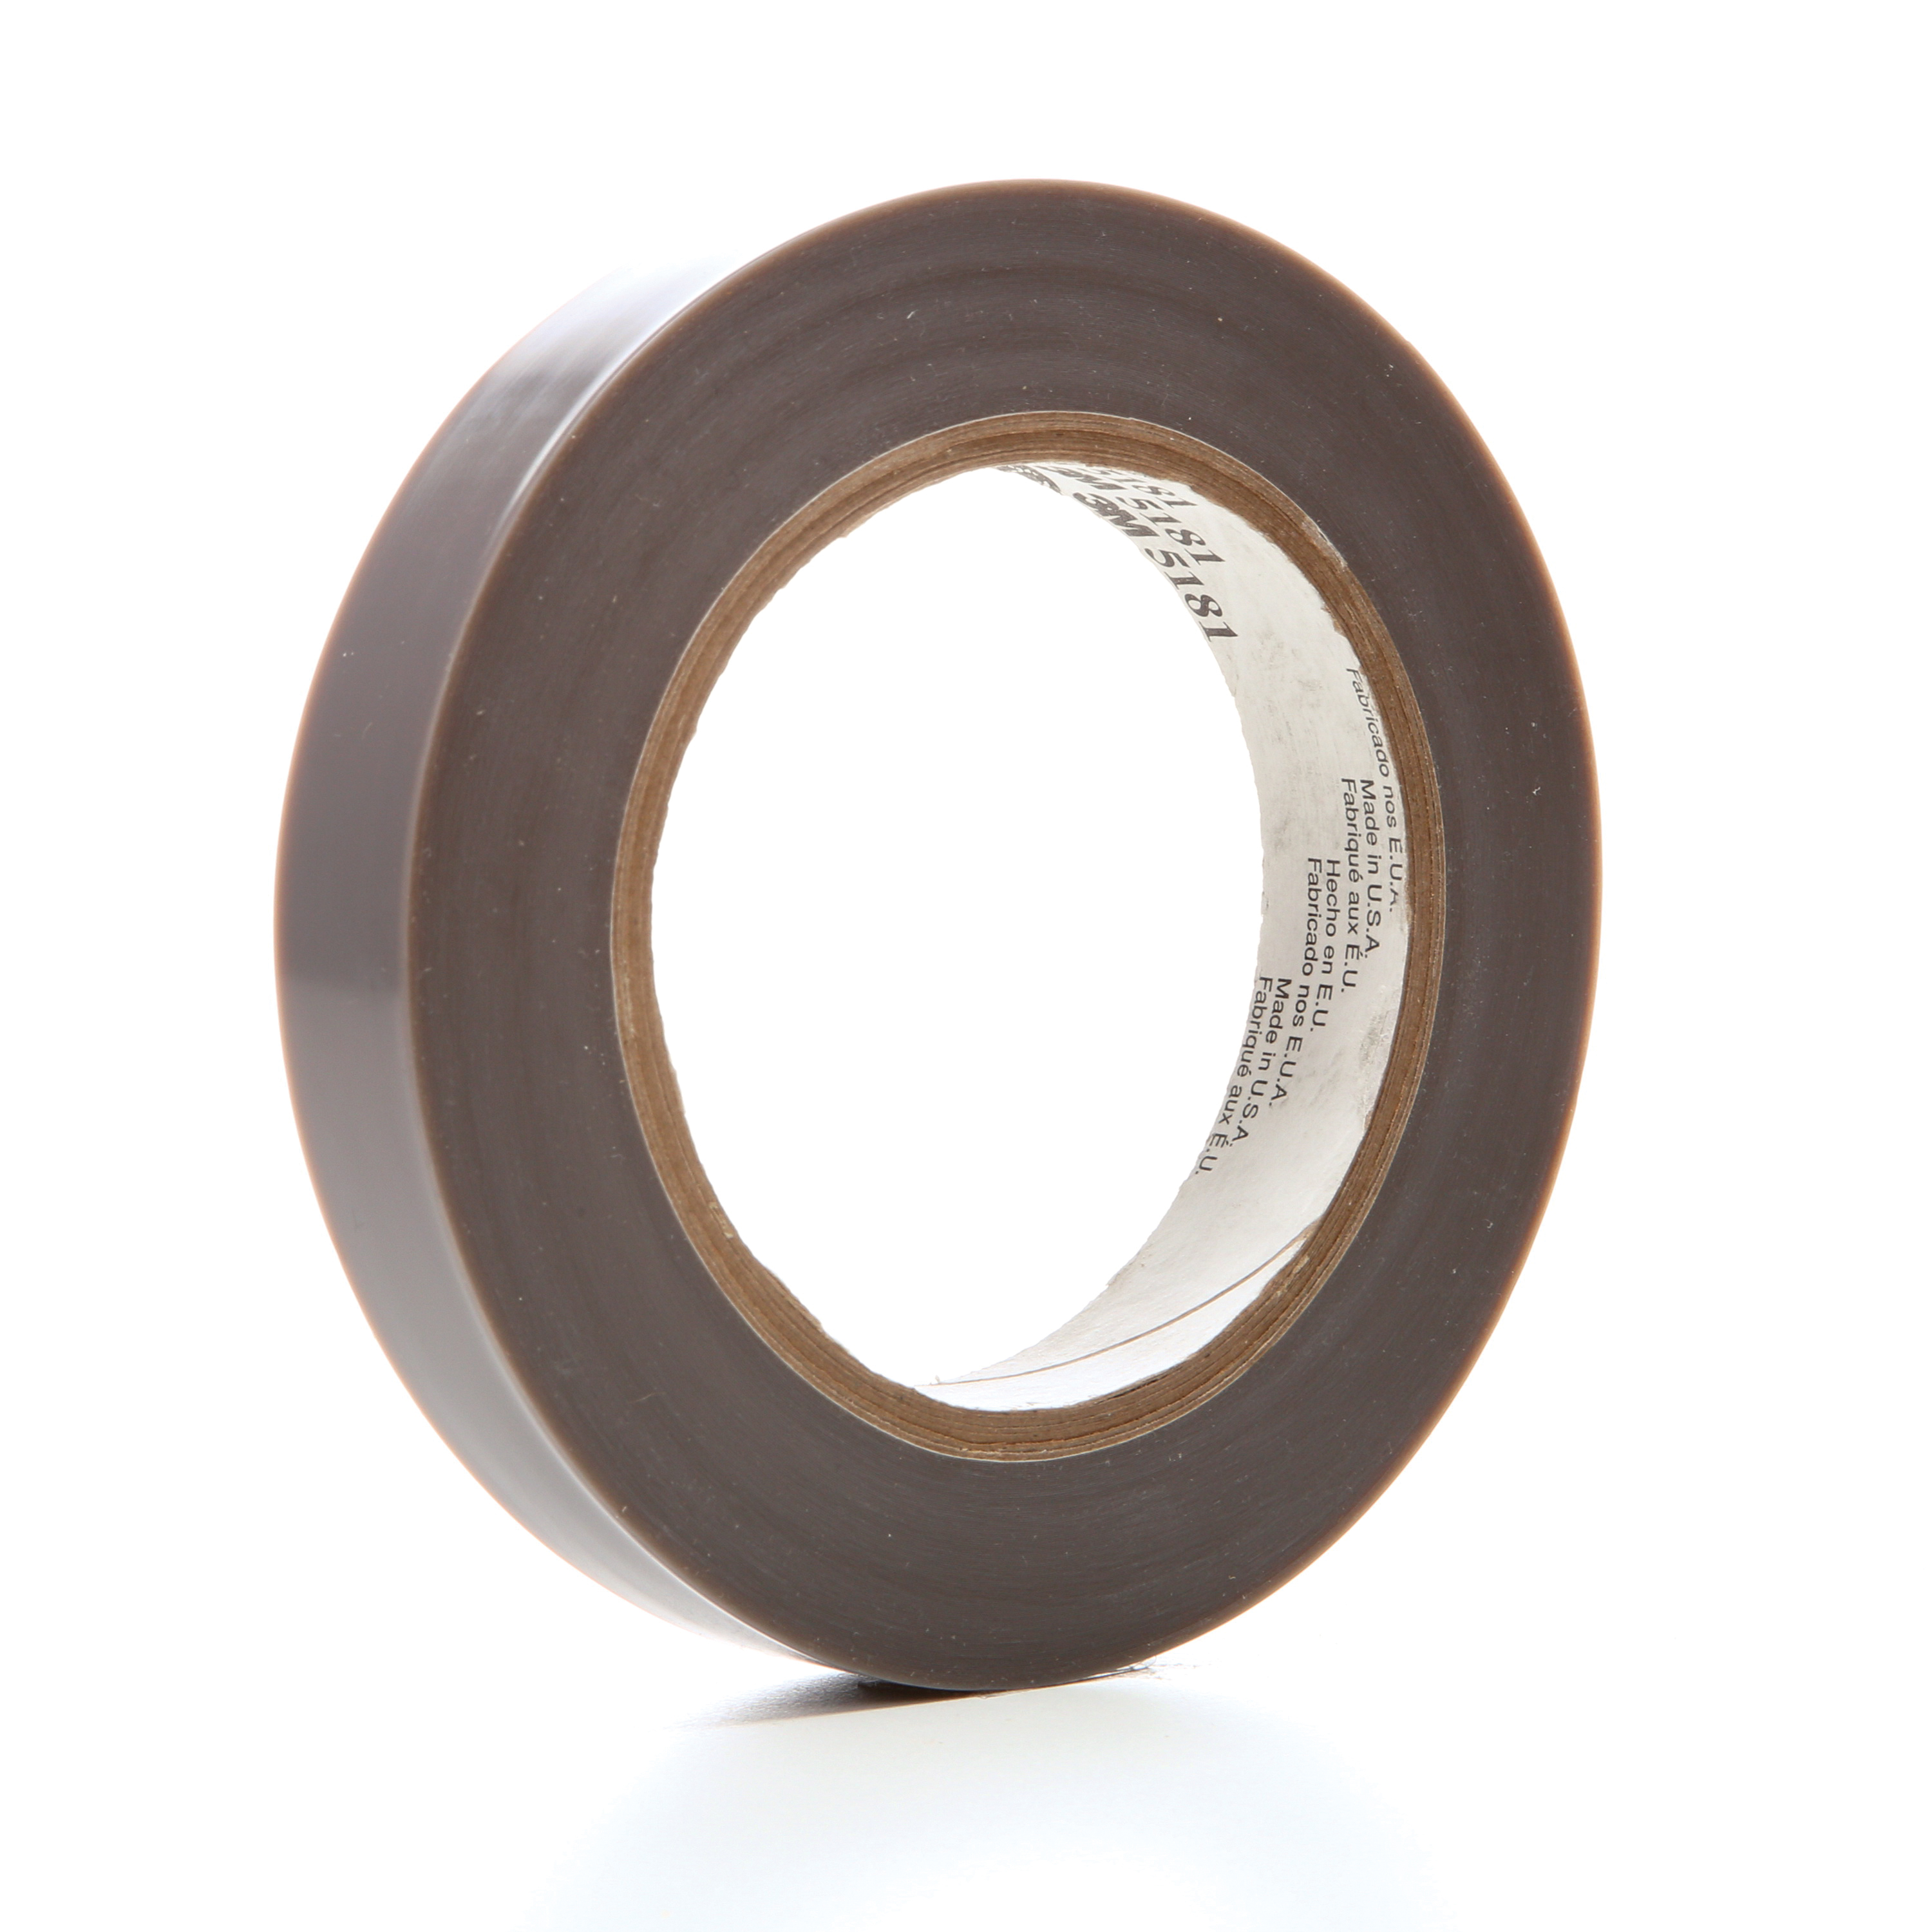 3M™ 021200-48114 General Purpose Film Tape, 36 yd L x 3/4 in W, 6.5 mil THK, Silicon Adhesive, Skived PTFE Backing, Gray